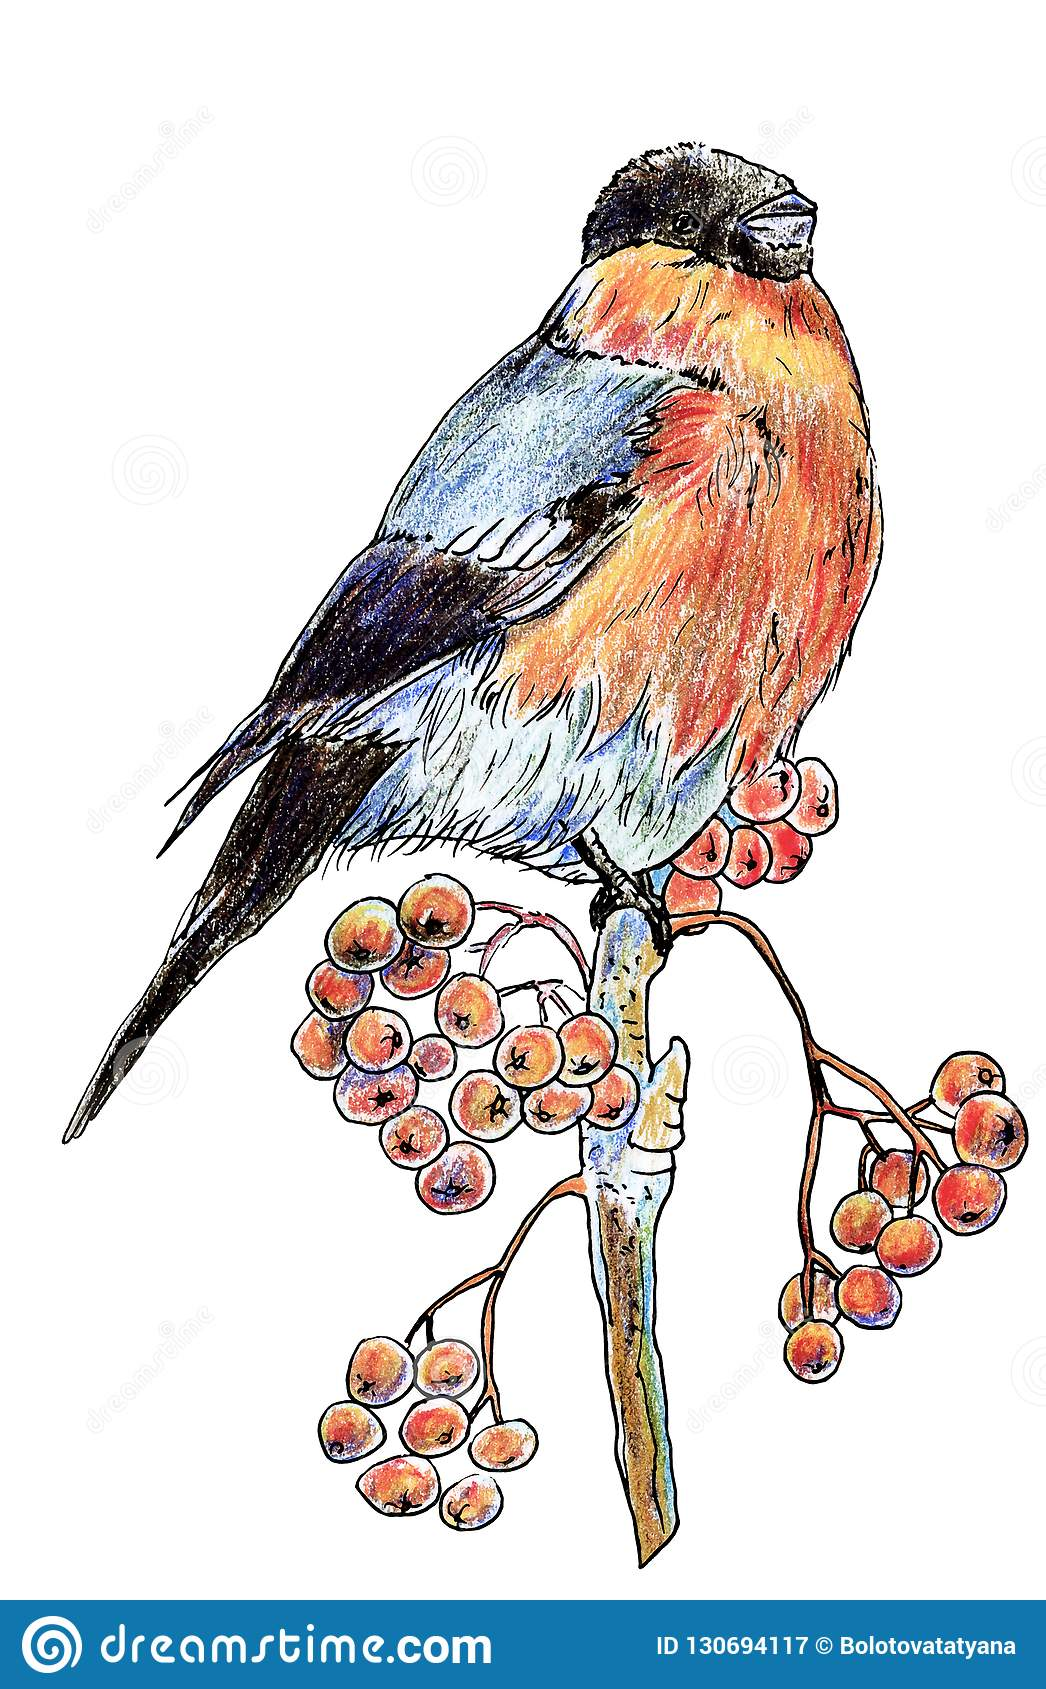 Lonely isolated bird bullfinch with black head and red-bellied winter sitting on a branch with berries of mountain ash, drawn with